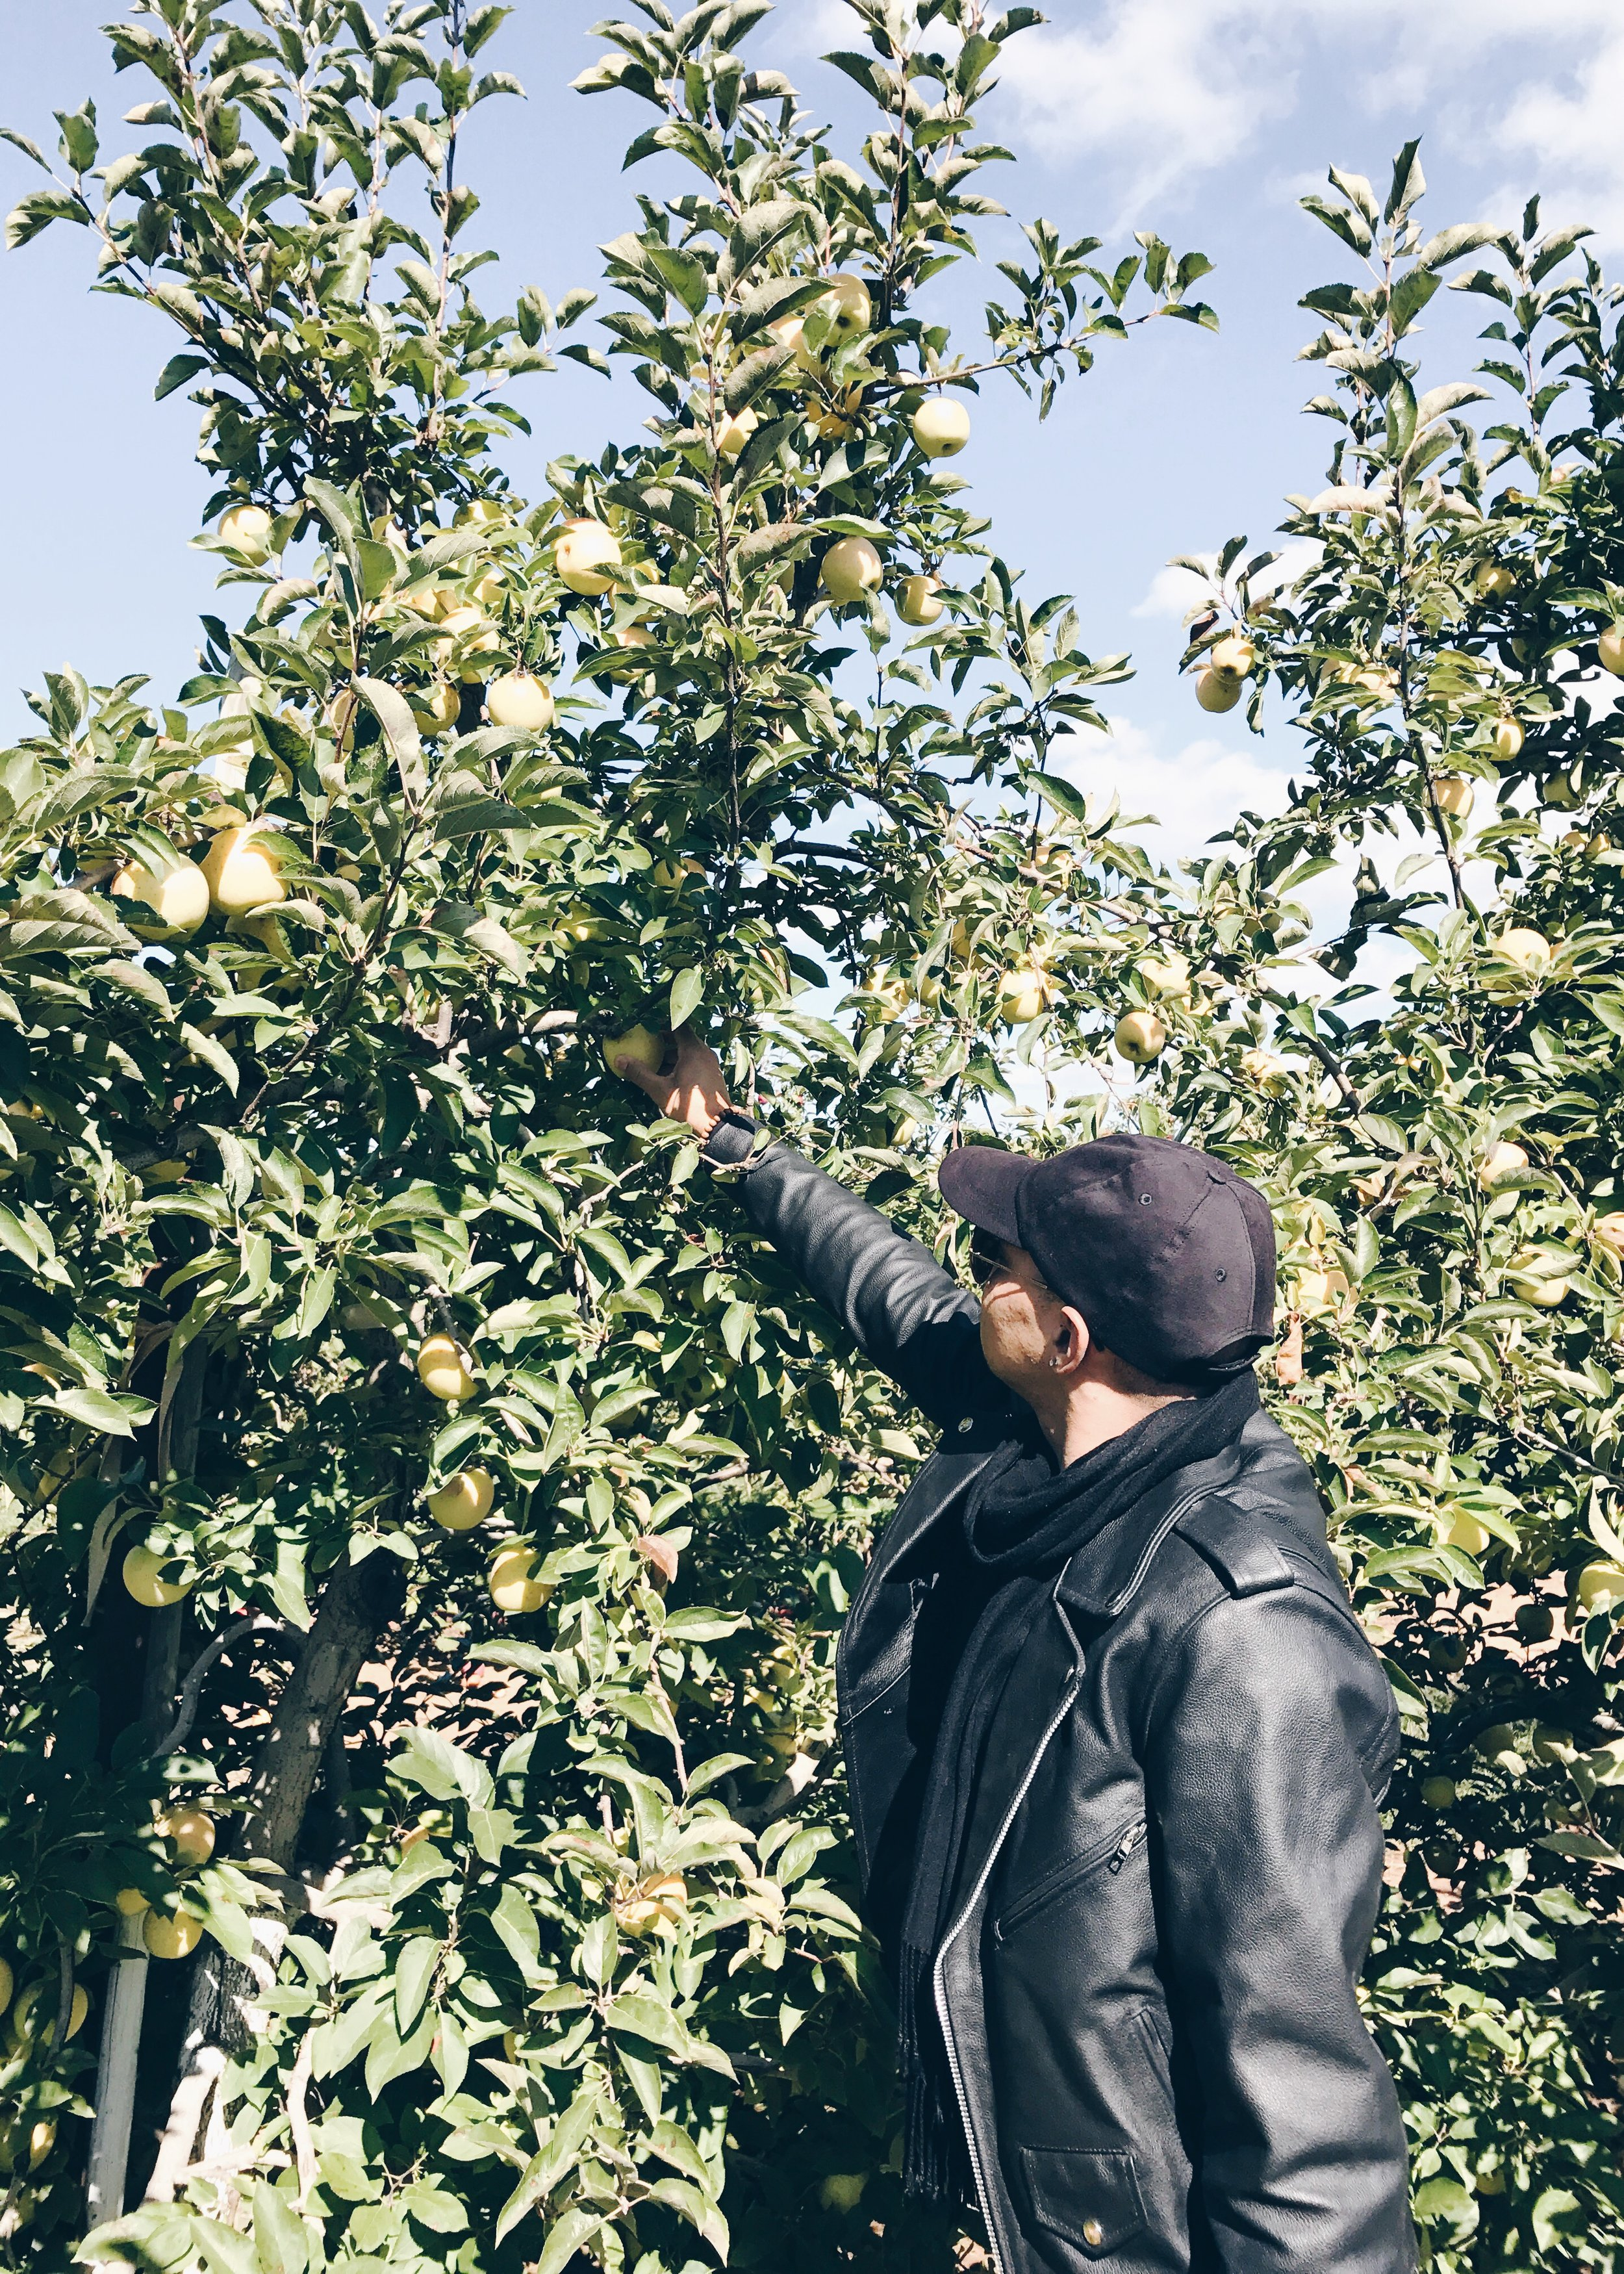 sam-c-perry-apple-and-pumpkin-picking-delicious-orchards-apple-tart-picking.jpg